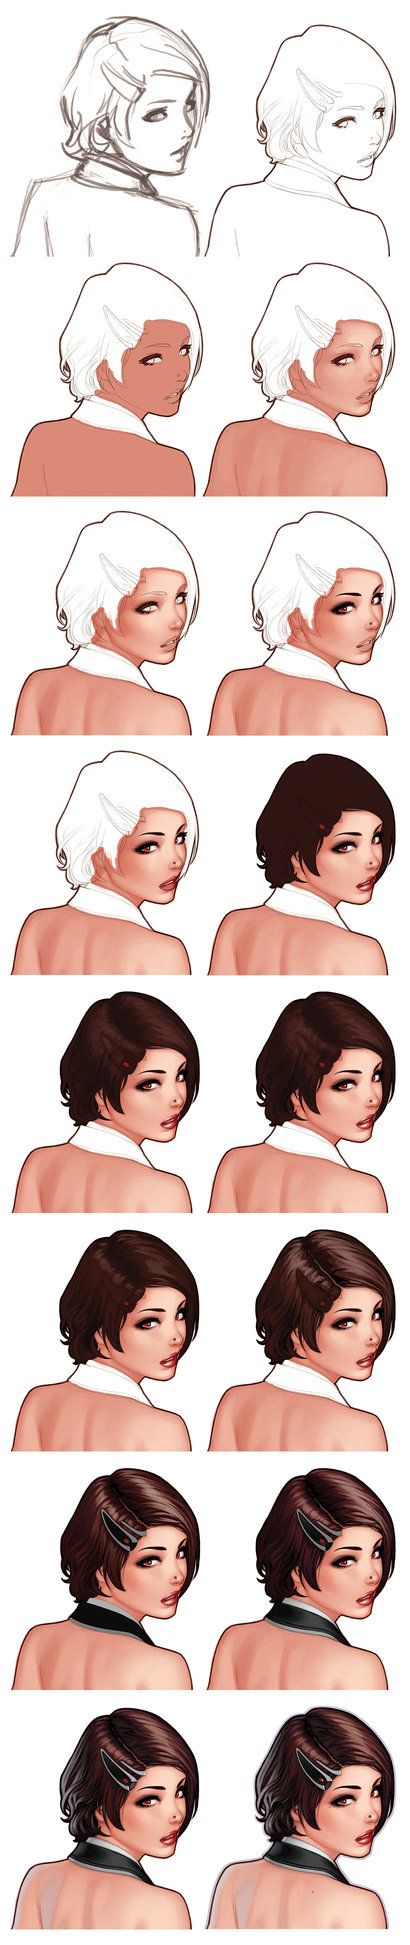 The Face Of Eva - Step By Step by ~WarrenLouw on deviantART